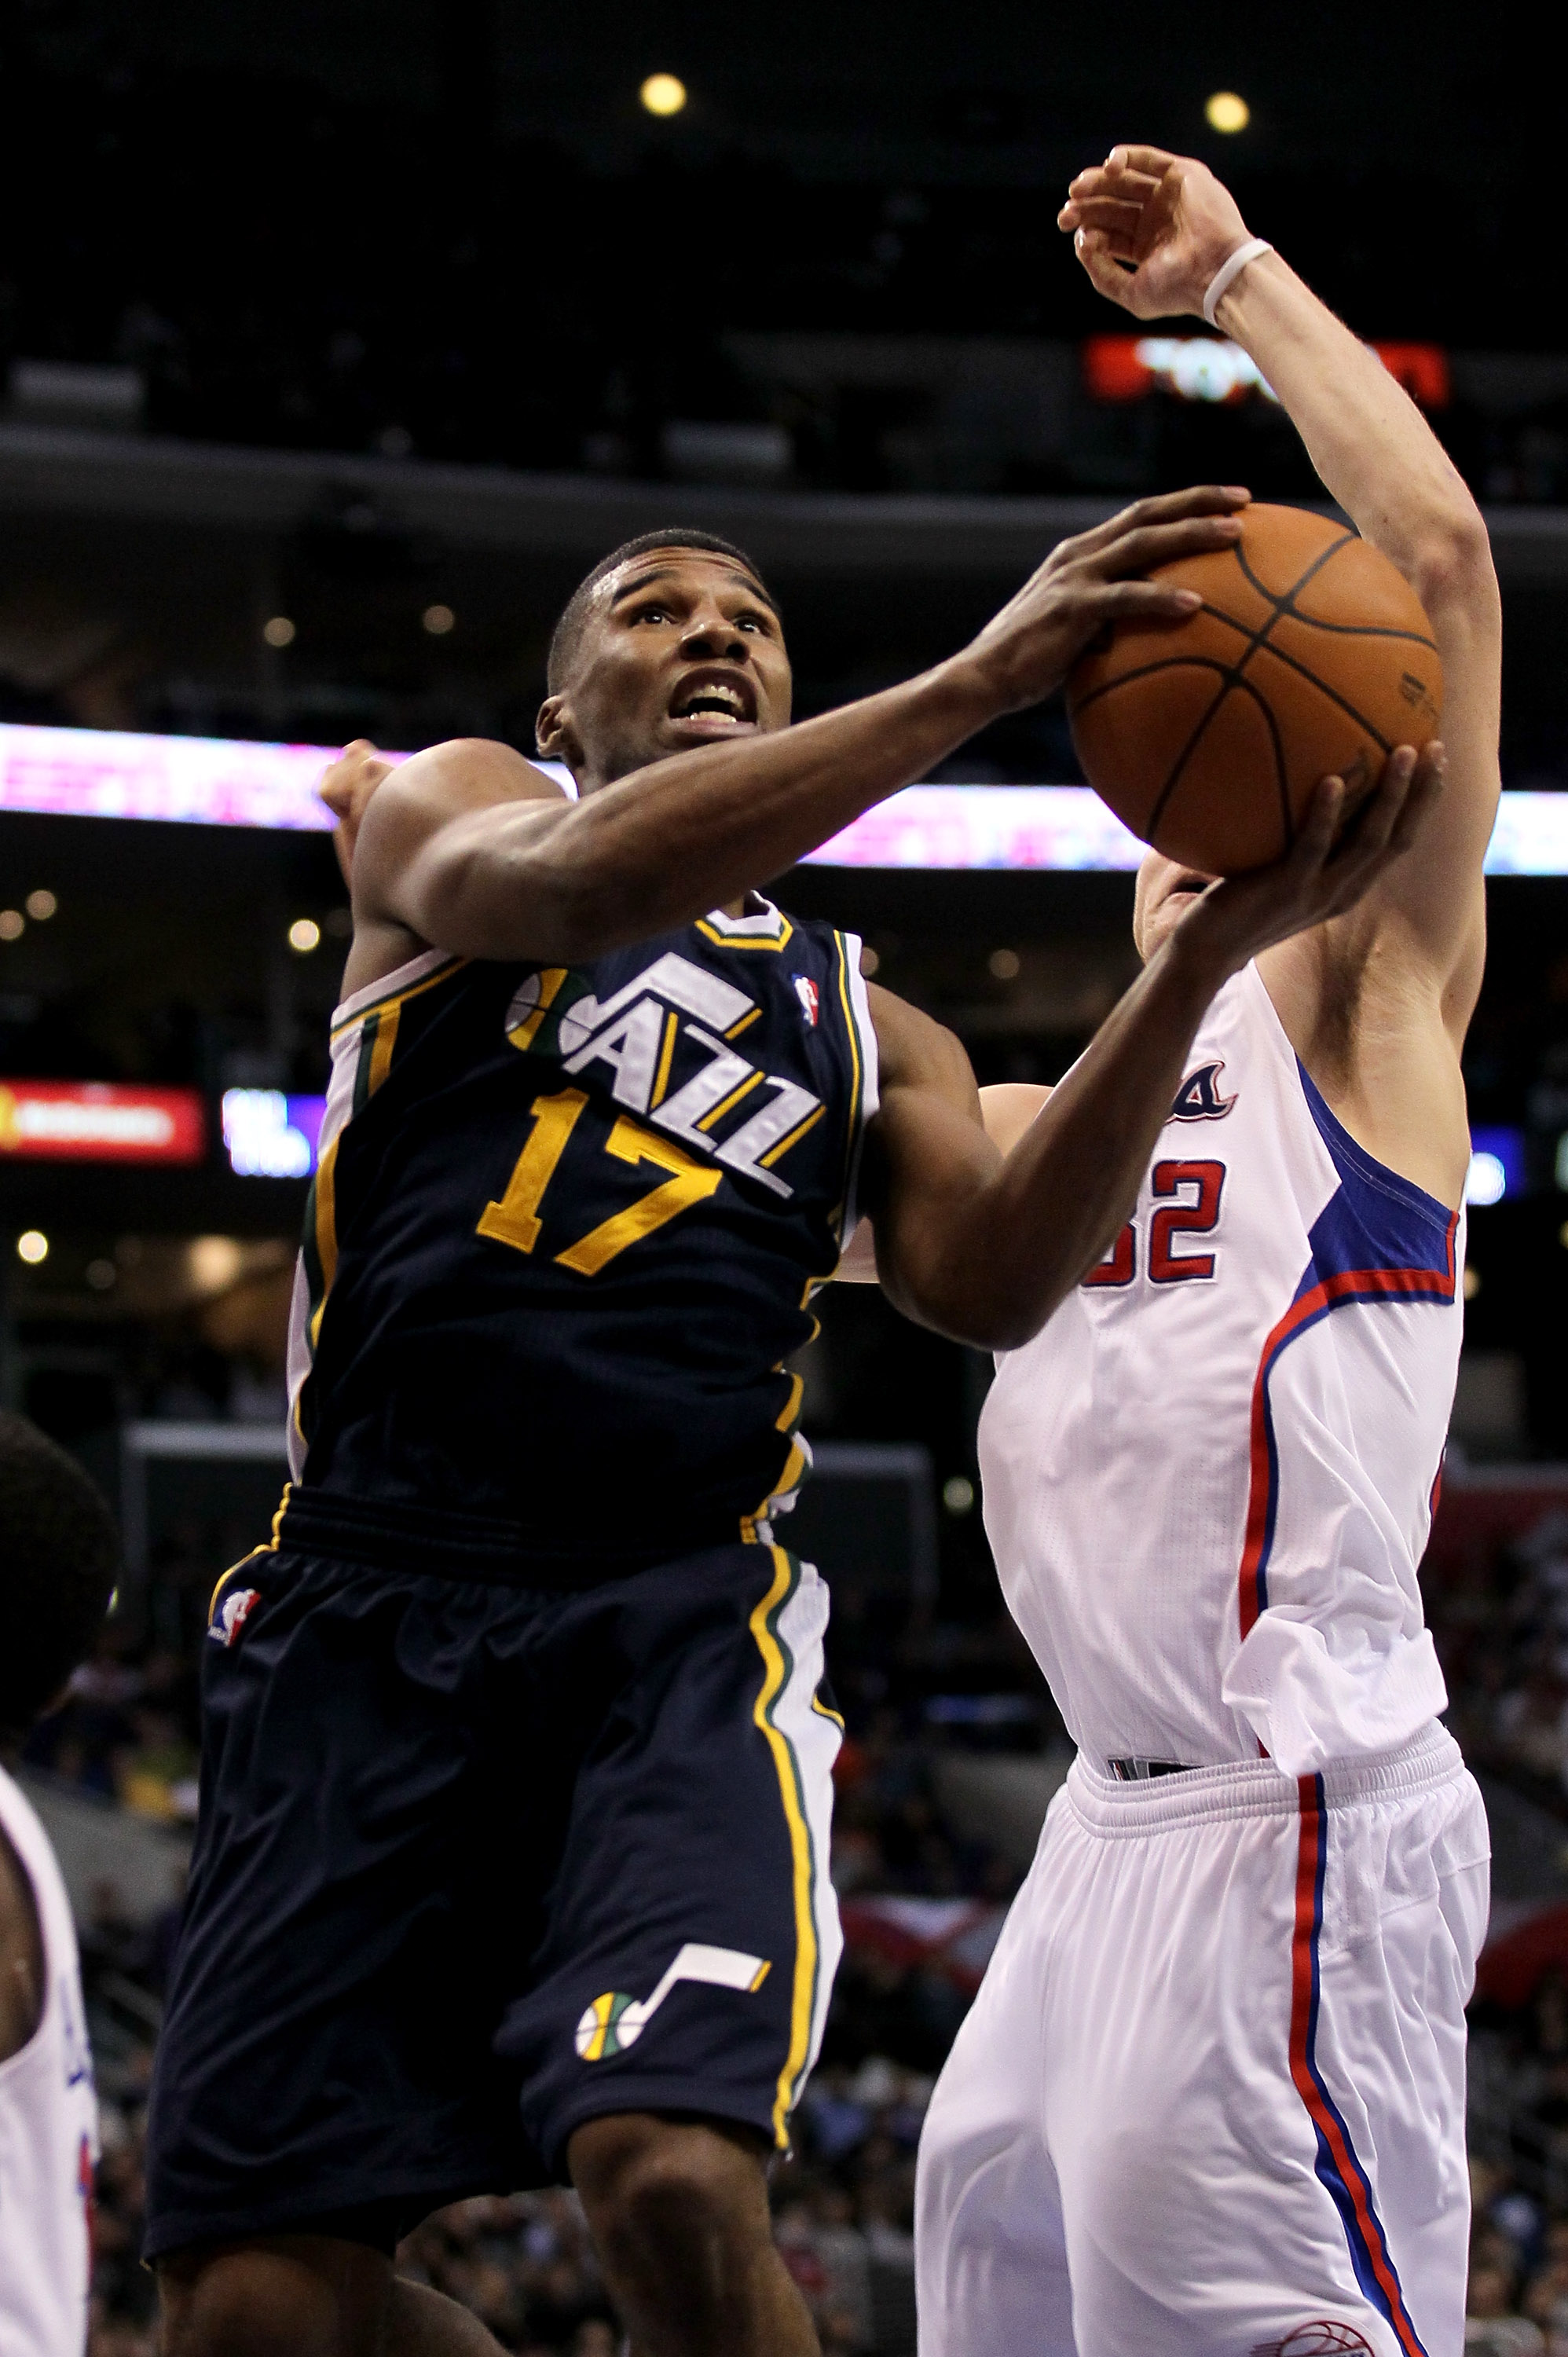 LOS ANGELES, CA - DECEMBER 29:  Ronnie Price #17 of the Utah Jazz shoots over Blake Griffin #32 of the Los Angeles Clippers at Staples Center on December 29, 2010 in Los Angeles, California.   The Jazz won 103-85.  NOTE TO USER: User expressly acknowledge